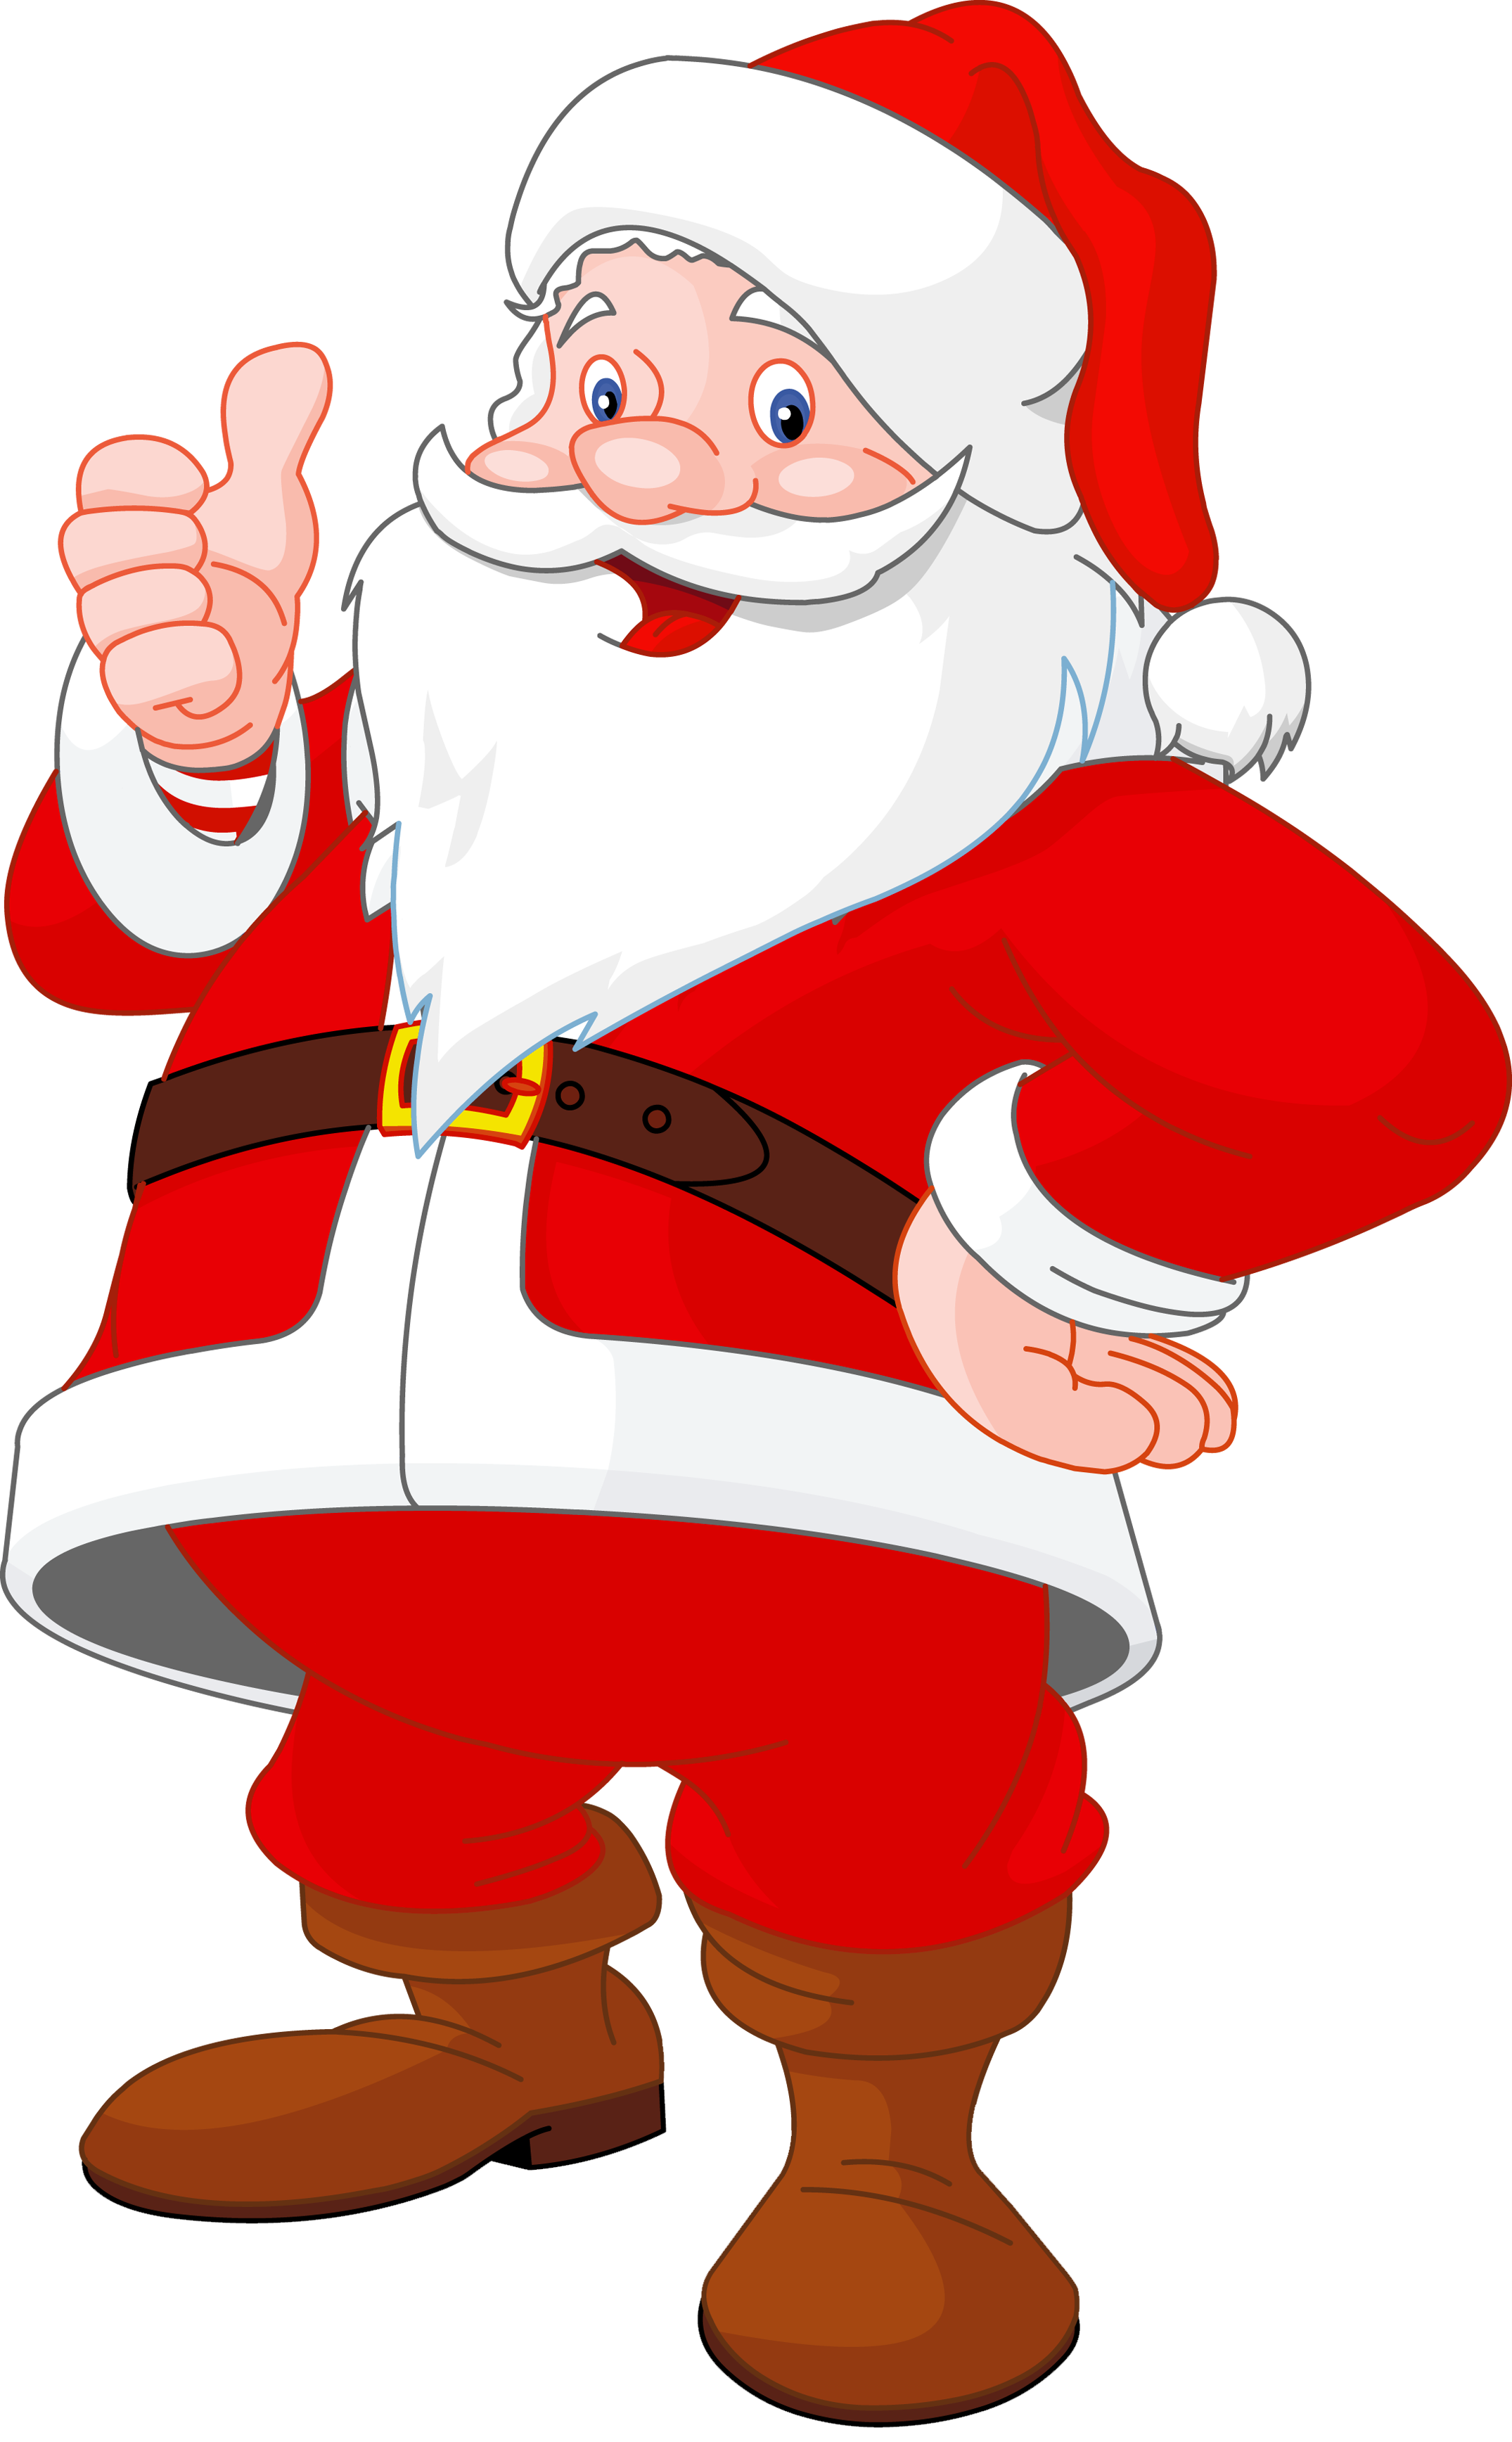 Transparent Santa Claus - Santa Chimney PNG HD